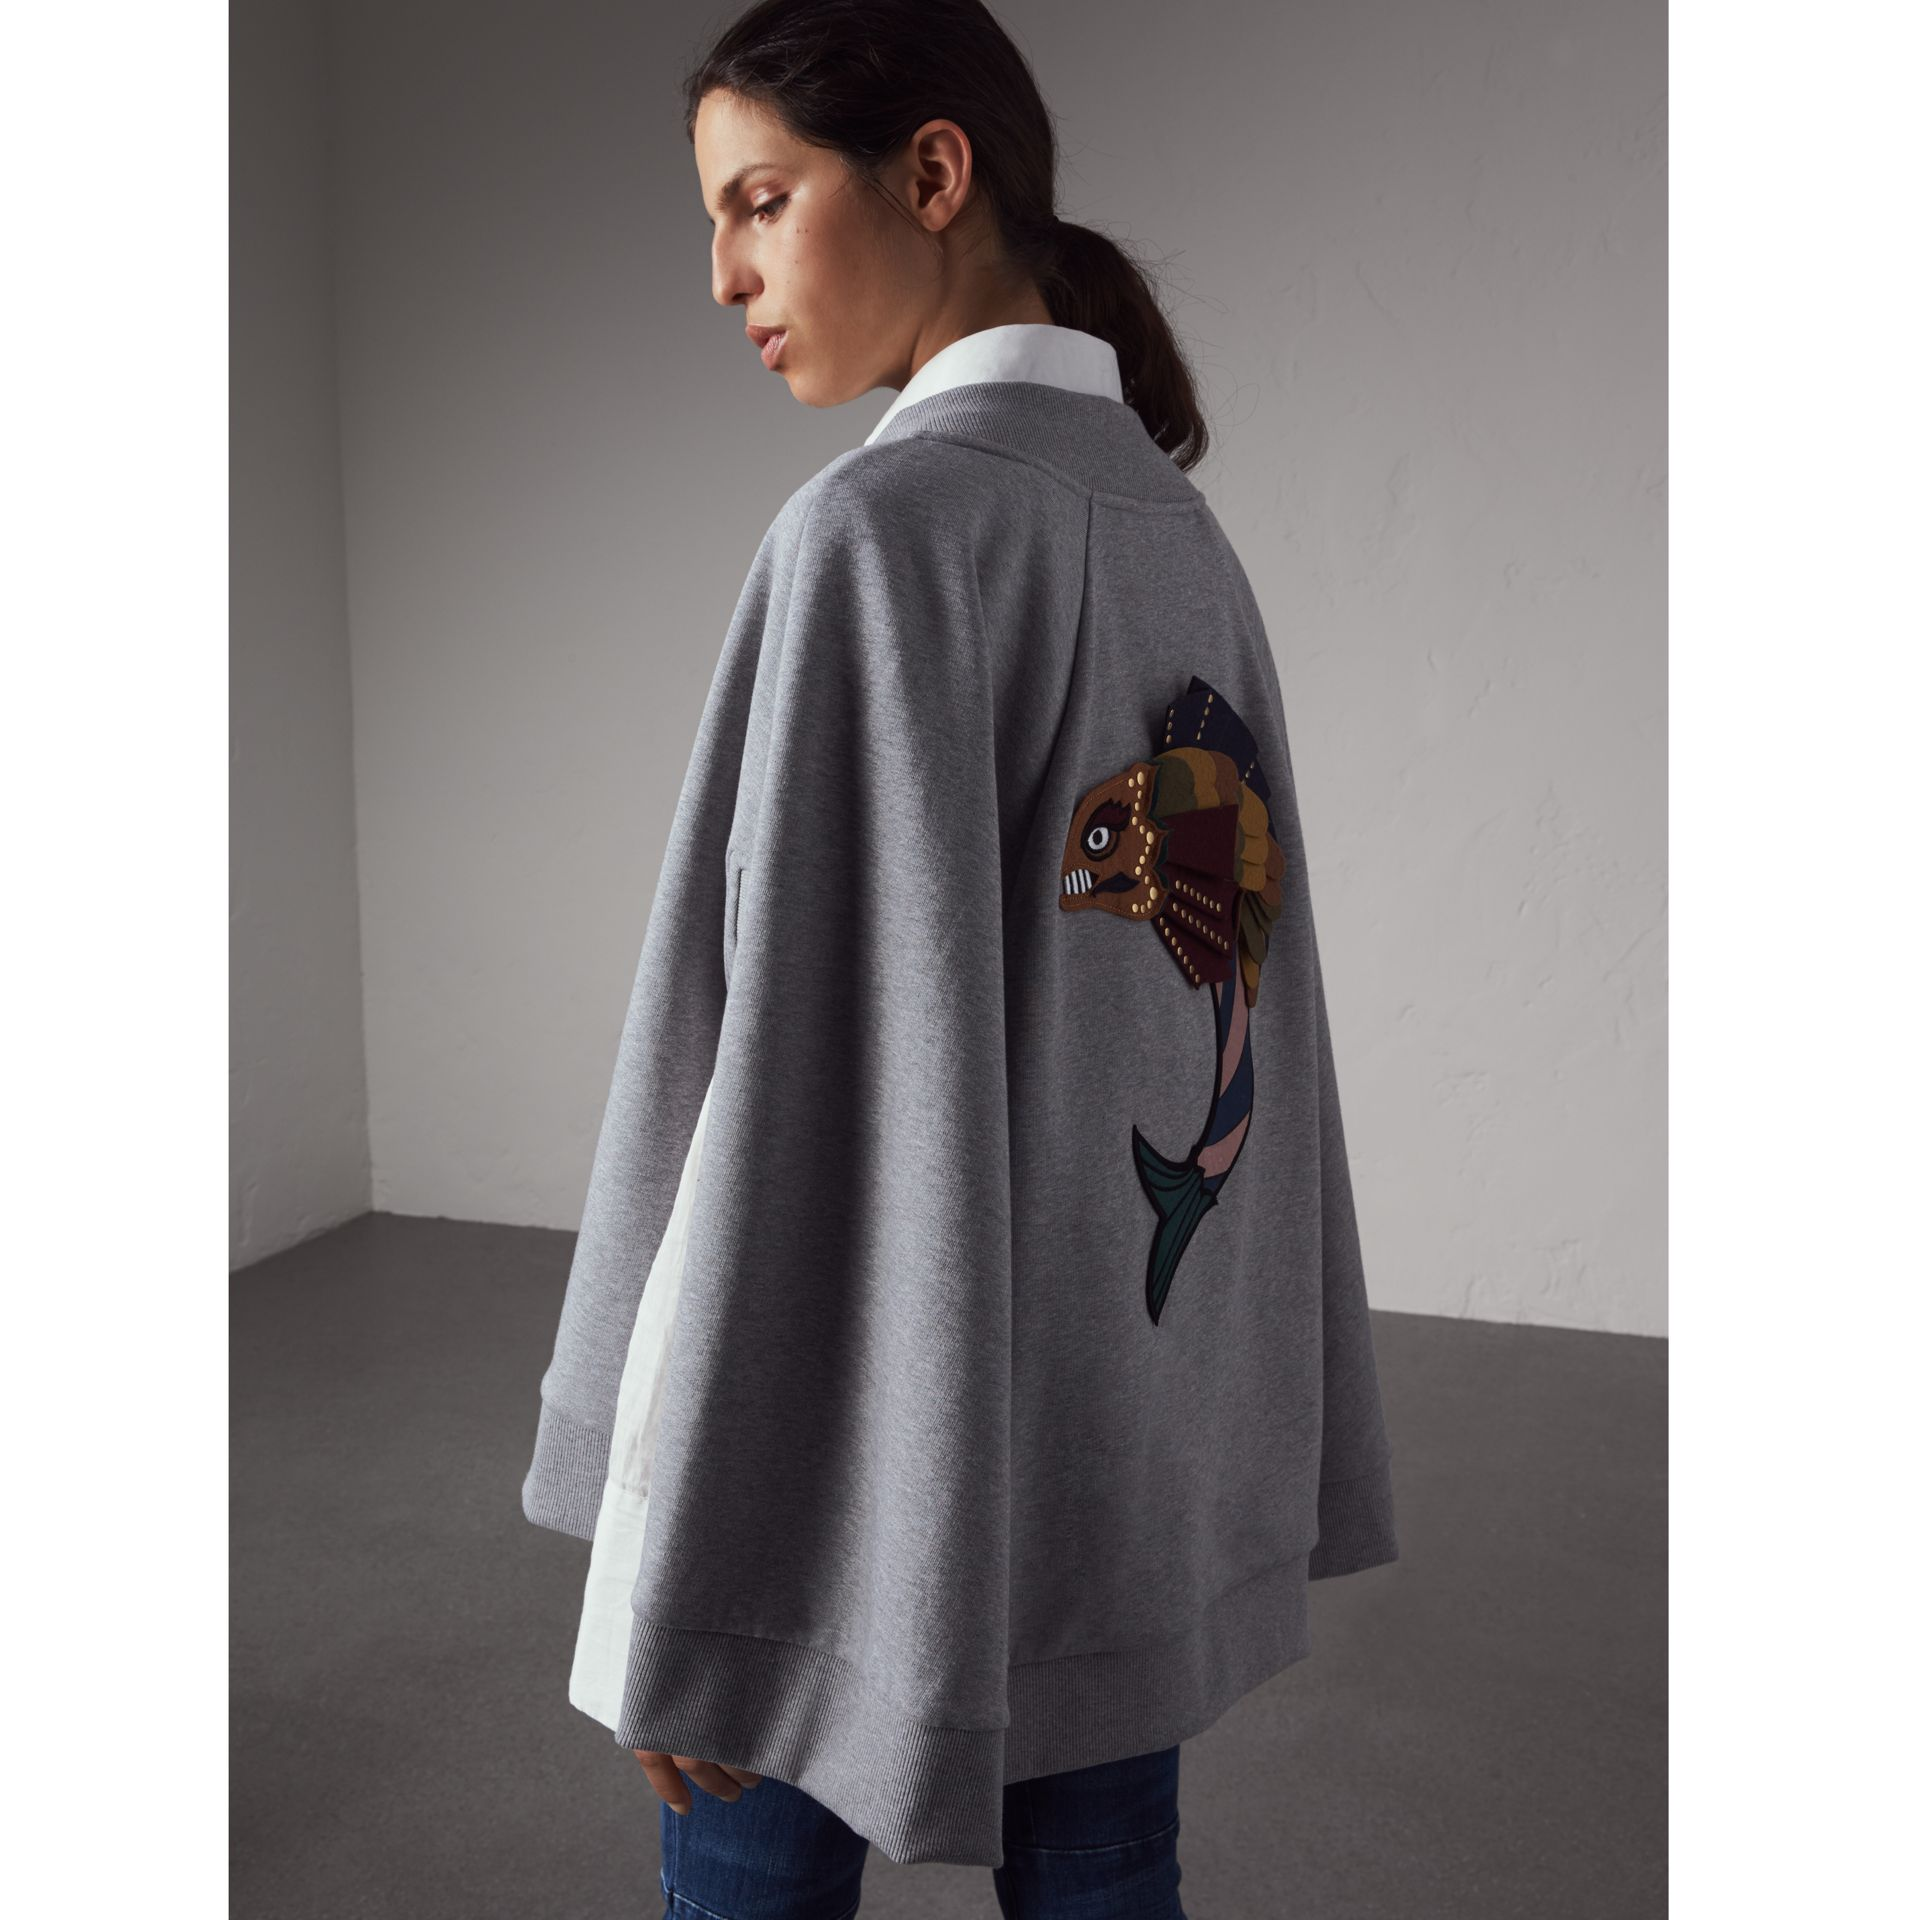 Beasts Appliqué Sweatshirt Cape in Pale Grey Melange - Women | Burberry Singapore - gallery image 1